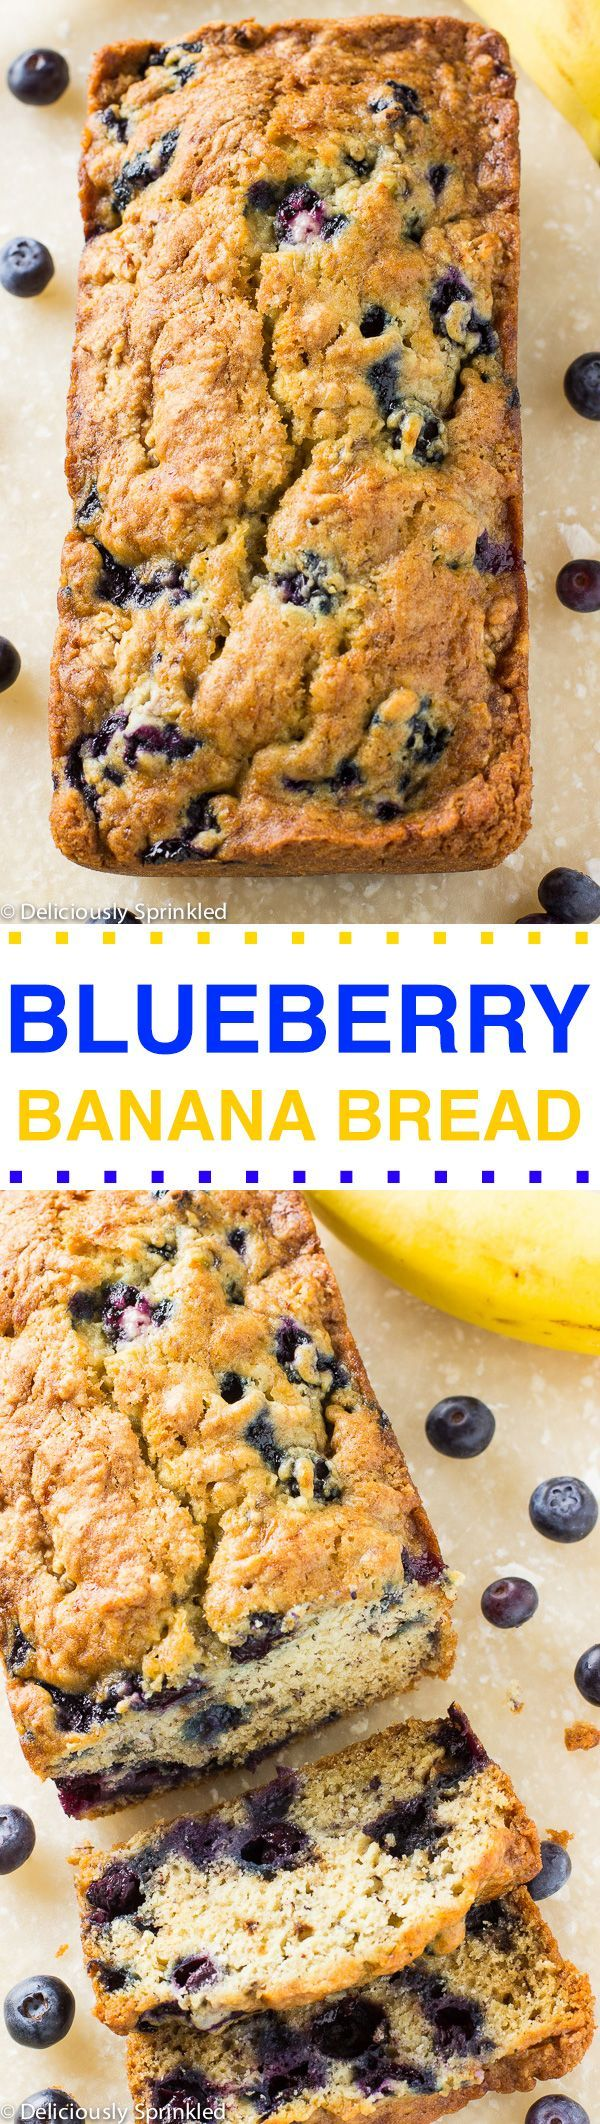 The BEST Blueberry Banana Bread Recipe!                              …